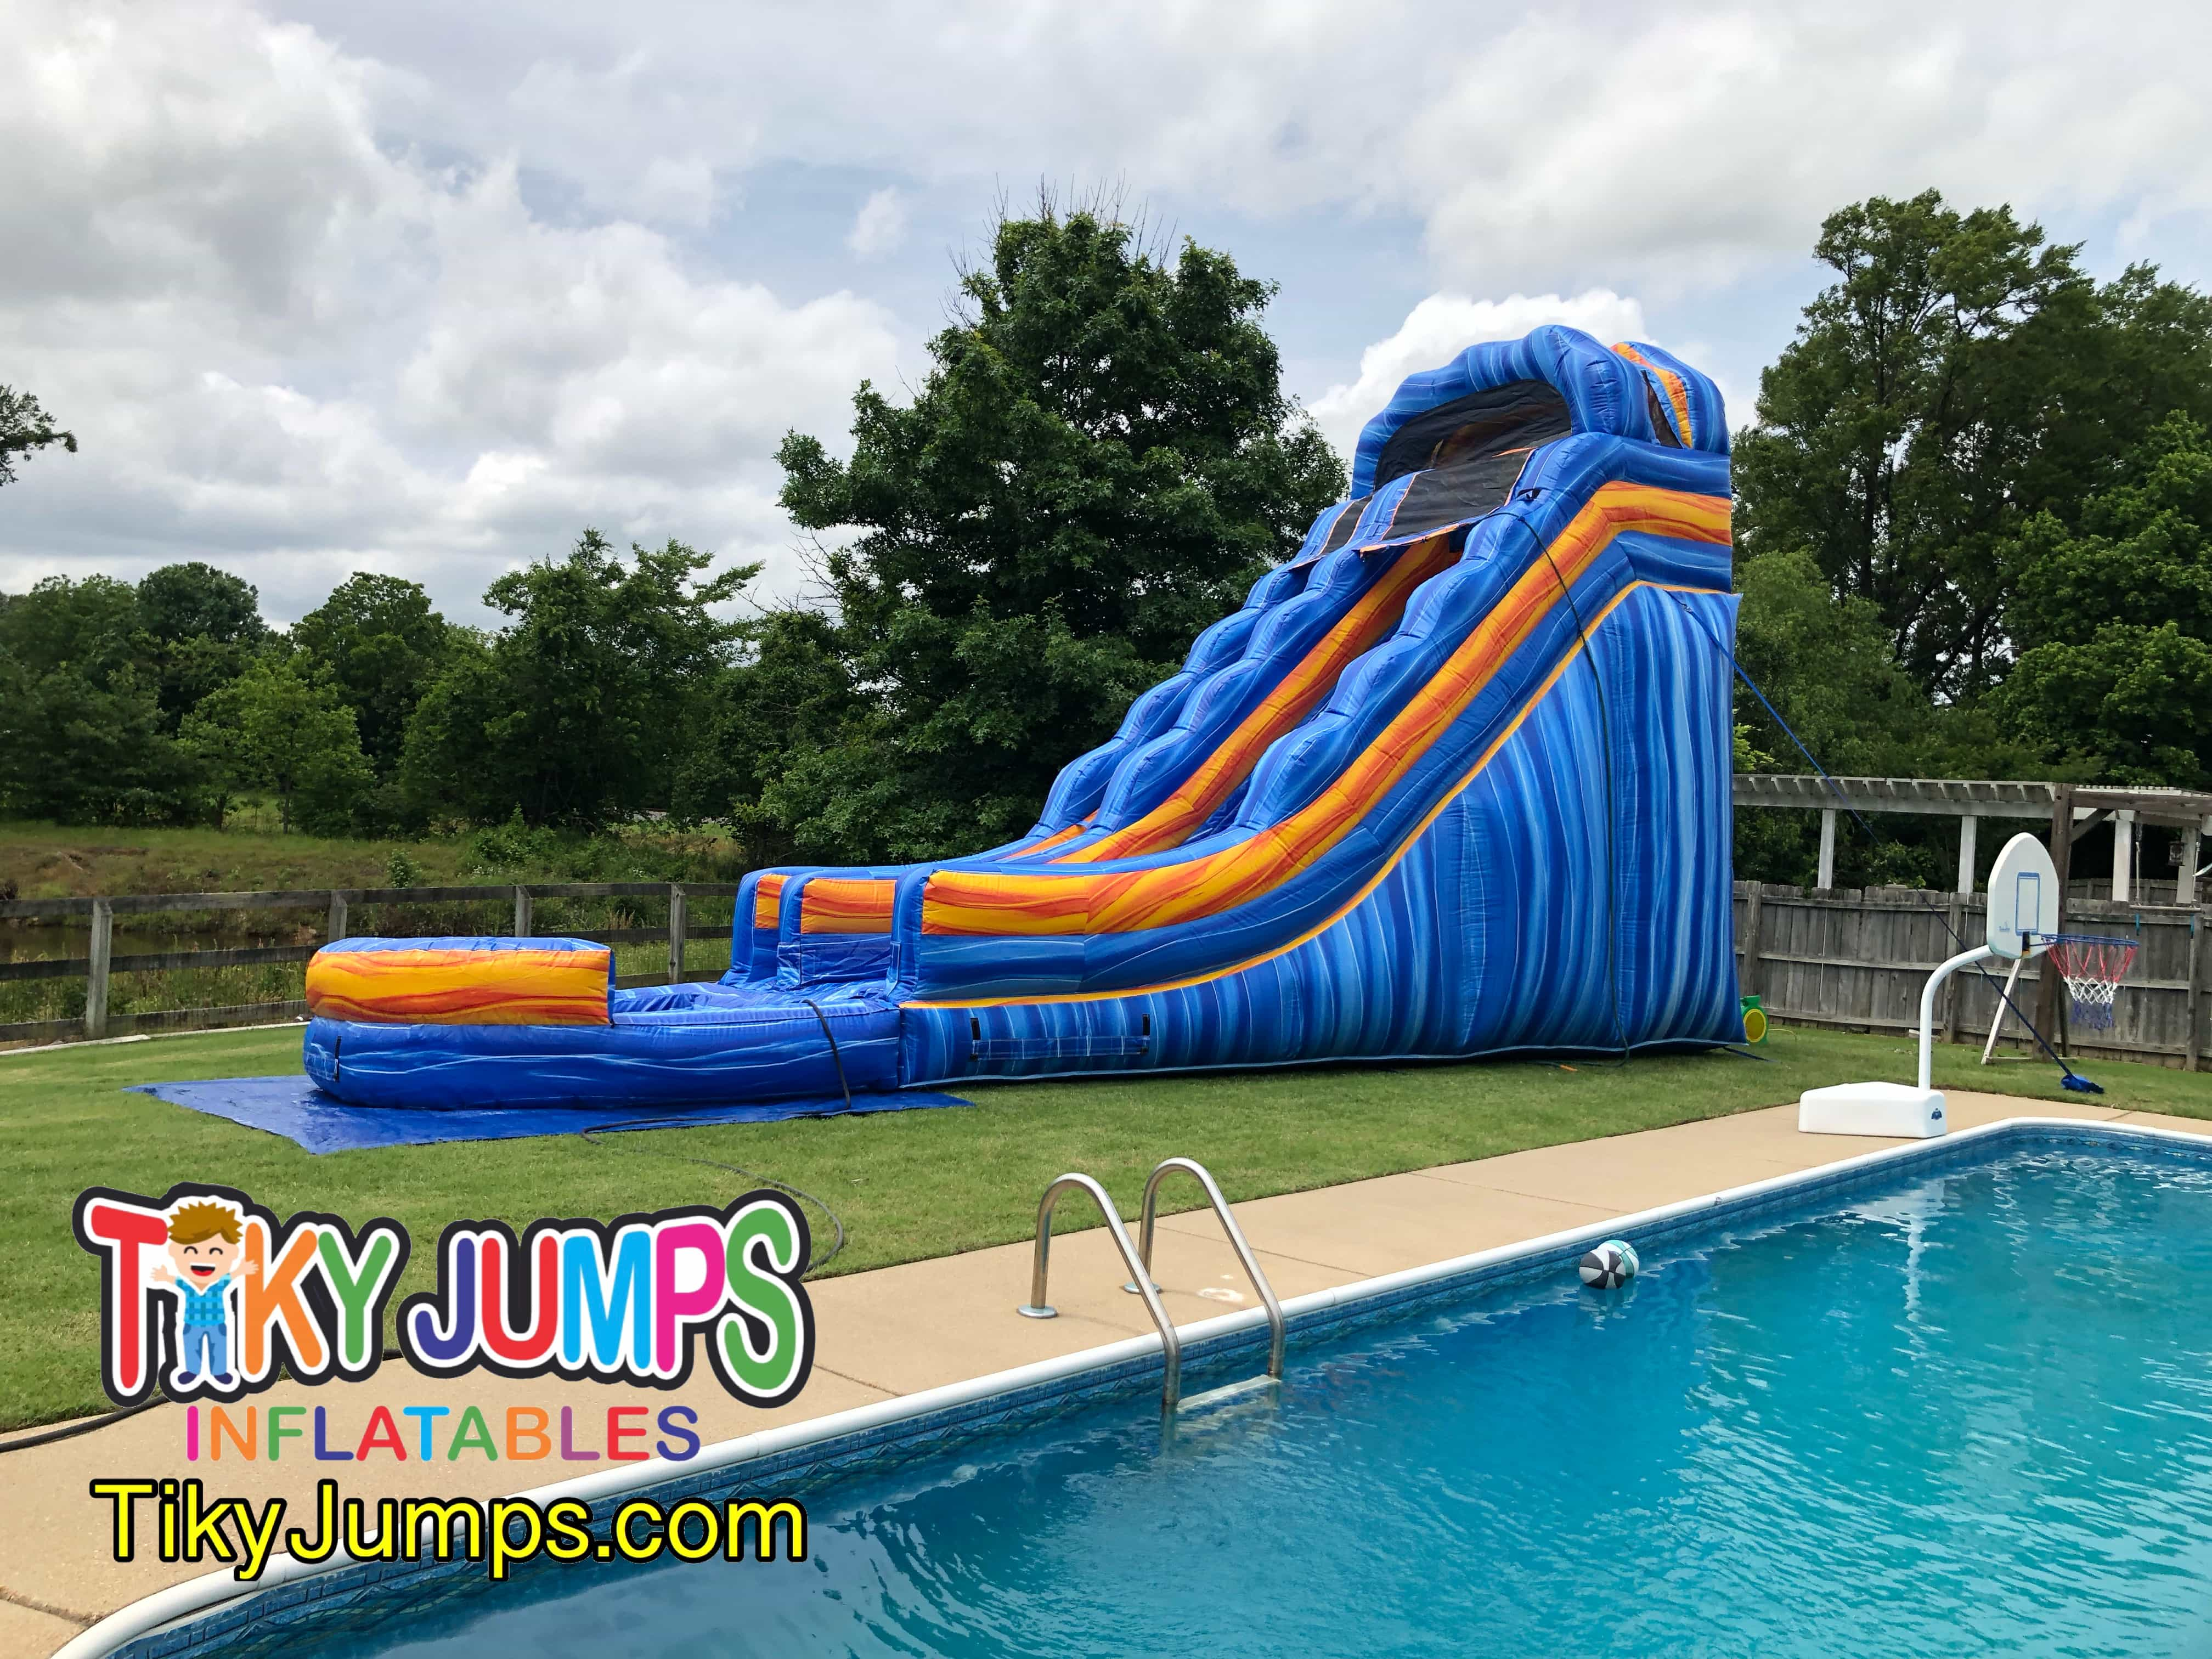 The Blue Electric Water Slide